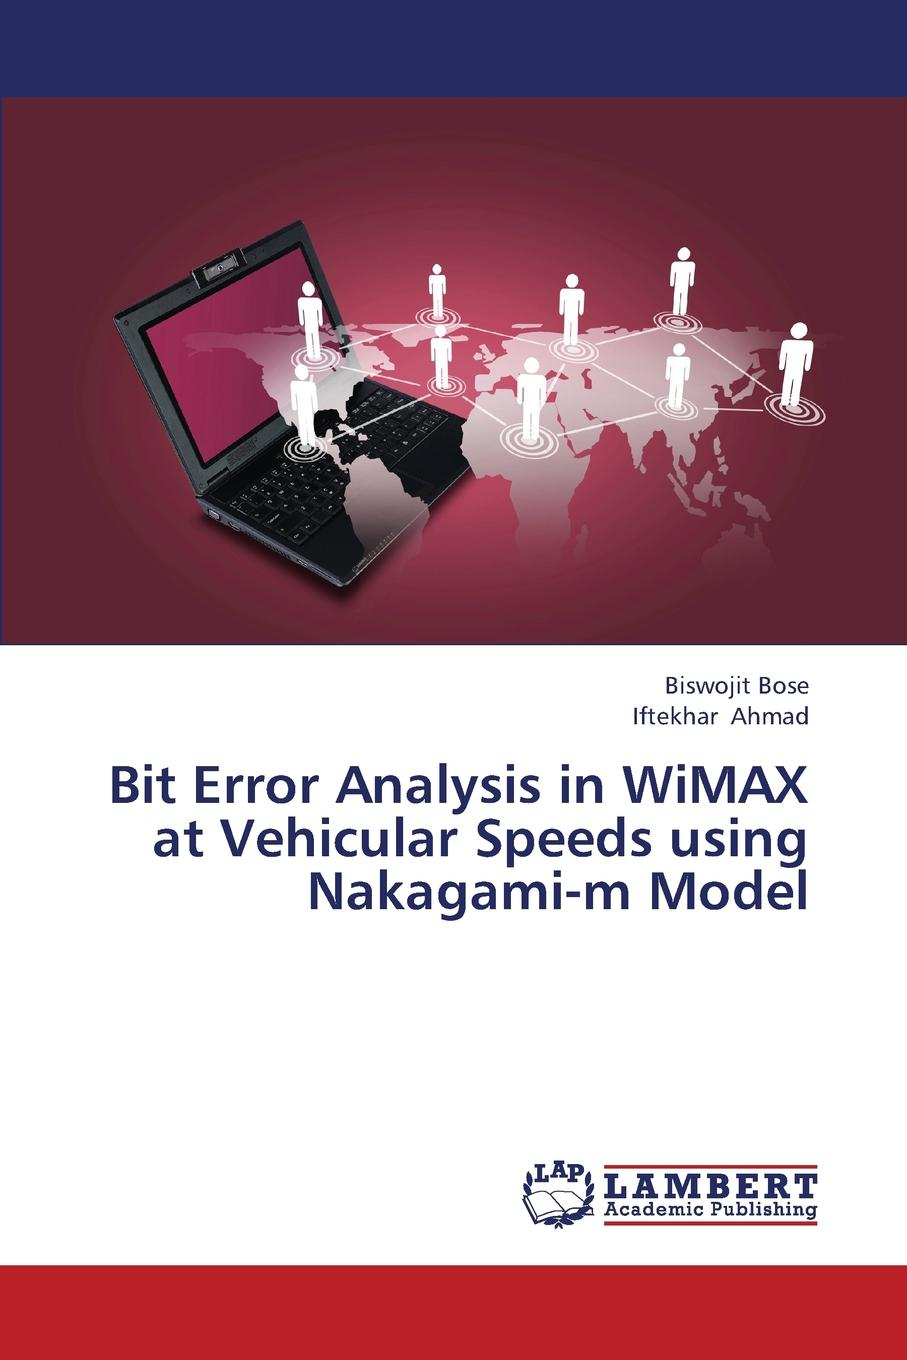 Bose Biswojit, Ahmad Iftekhar Bit Error Analysis in Wimax at Vehicular Speeds Using Nakagami-M Model